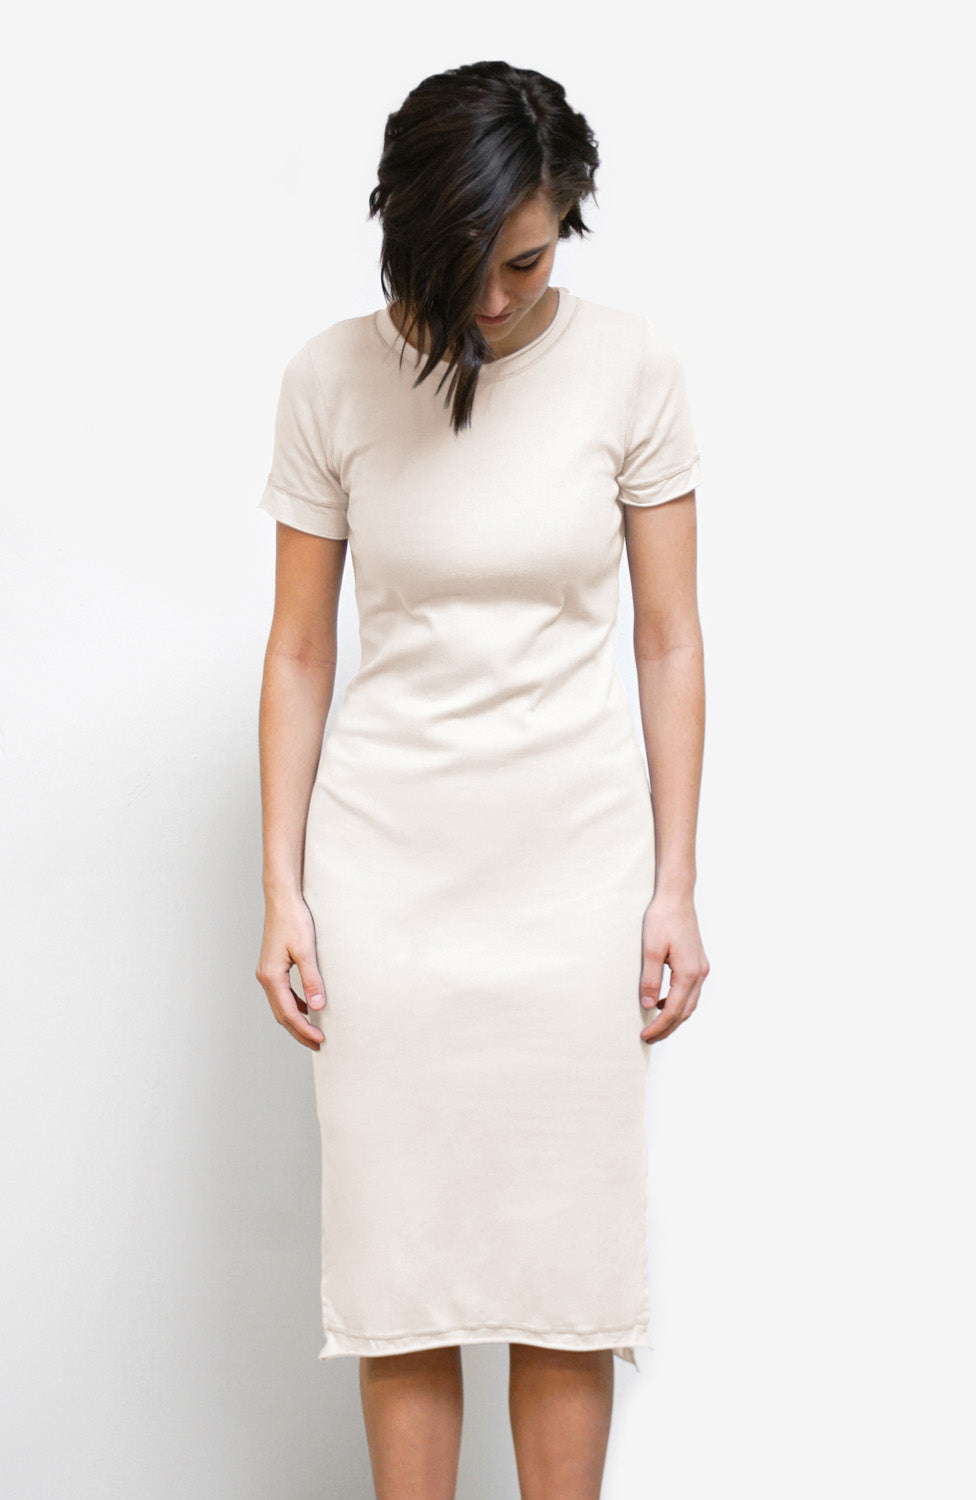 Alabama Chanin Organic Cotton Dress in Natural with Short Sleeves